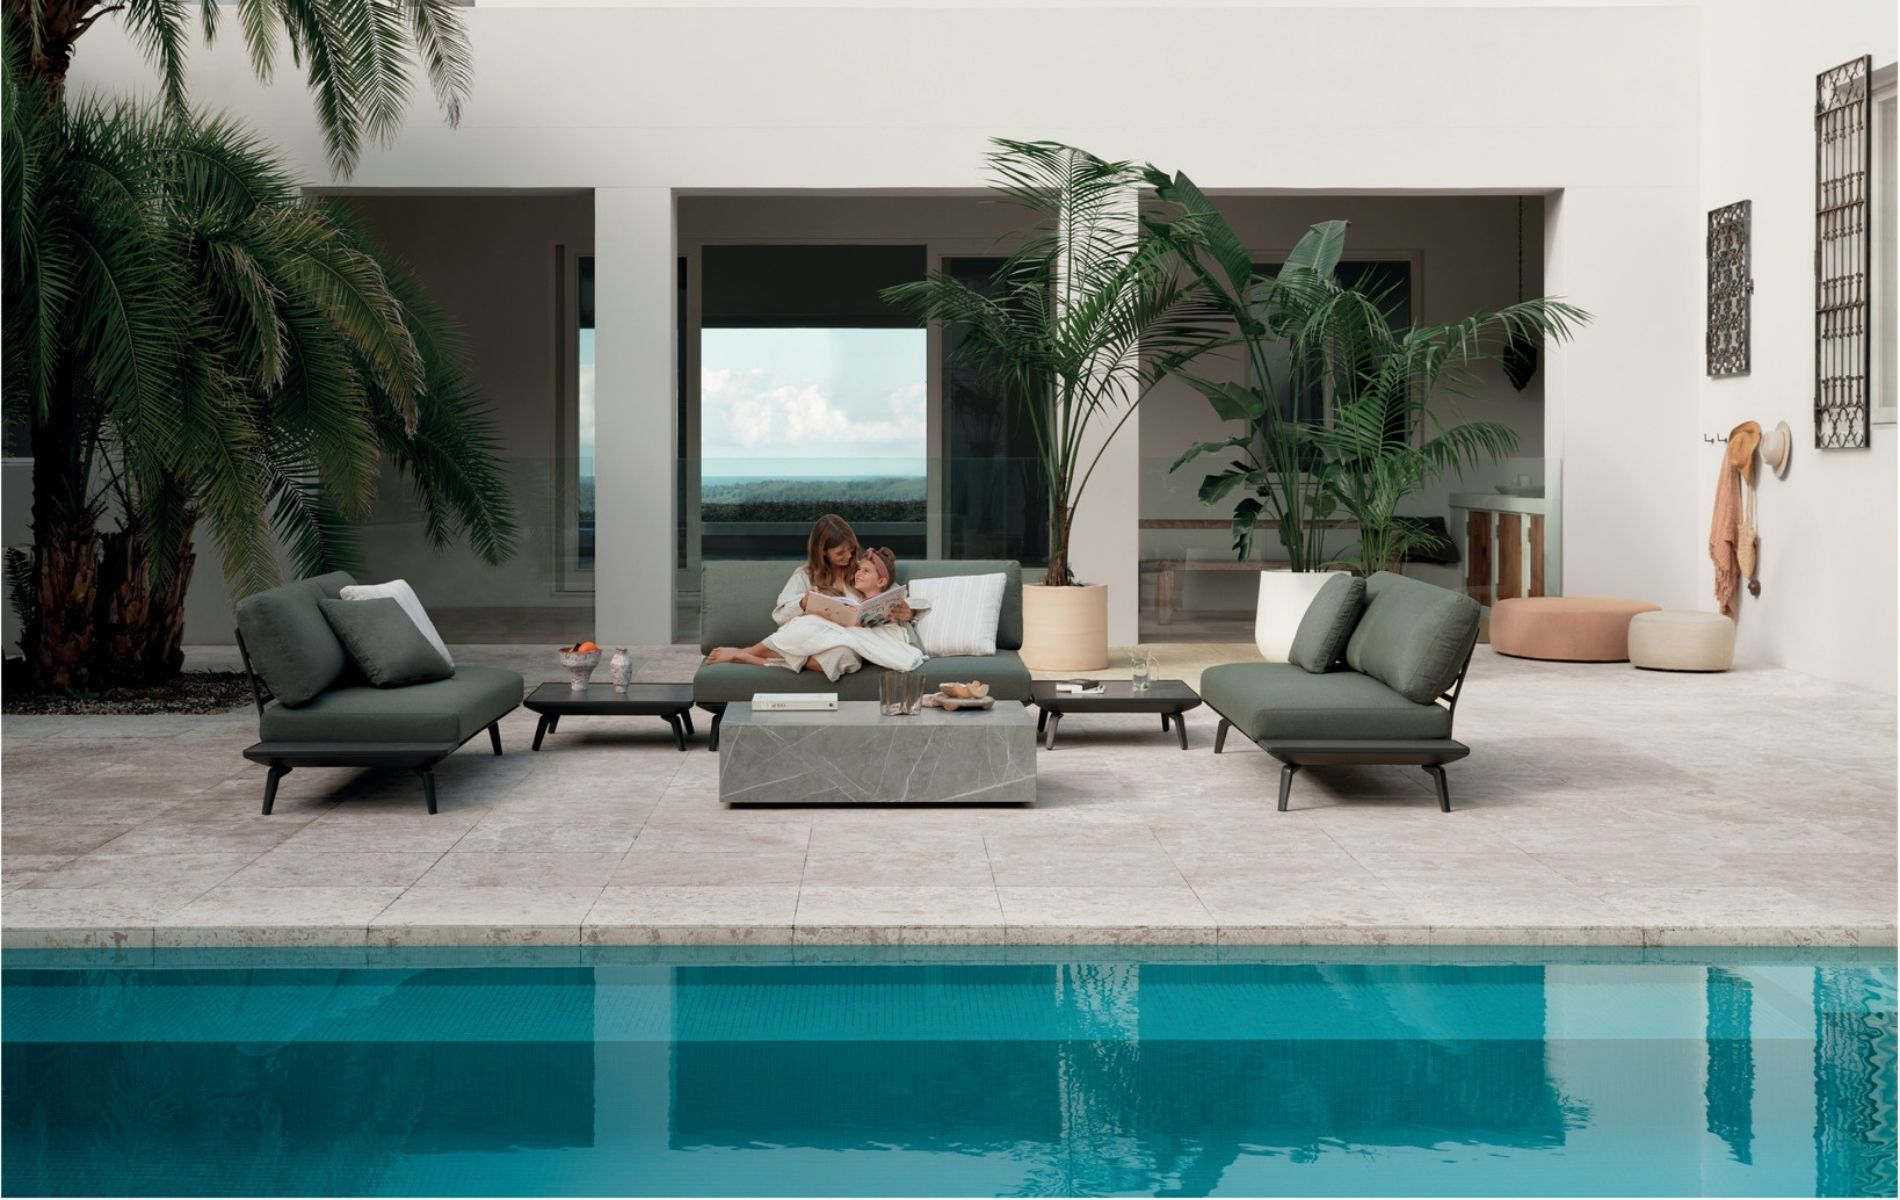 King Living Sets The Standard For Outdoor Living With Style & Comfort